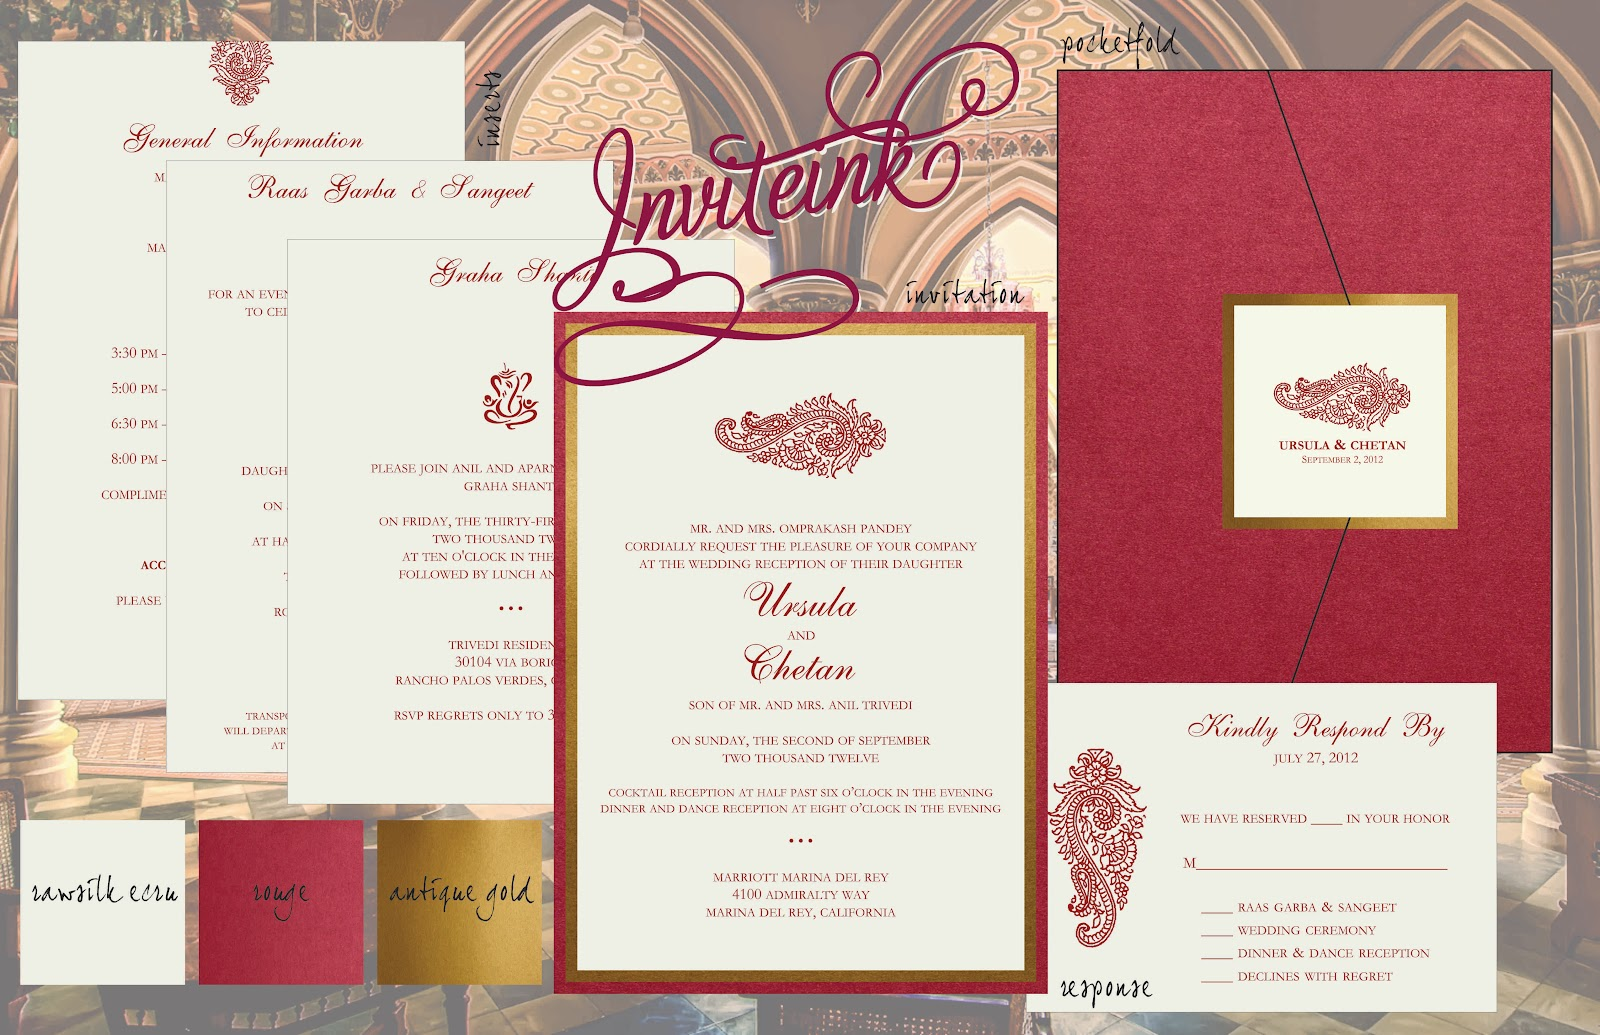 Inviteink: RED AND GOLD WEDDING INVITATION